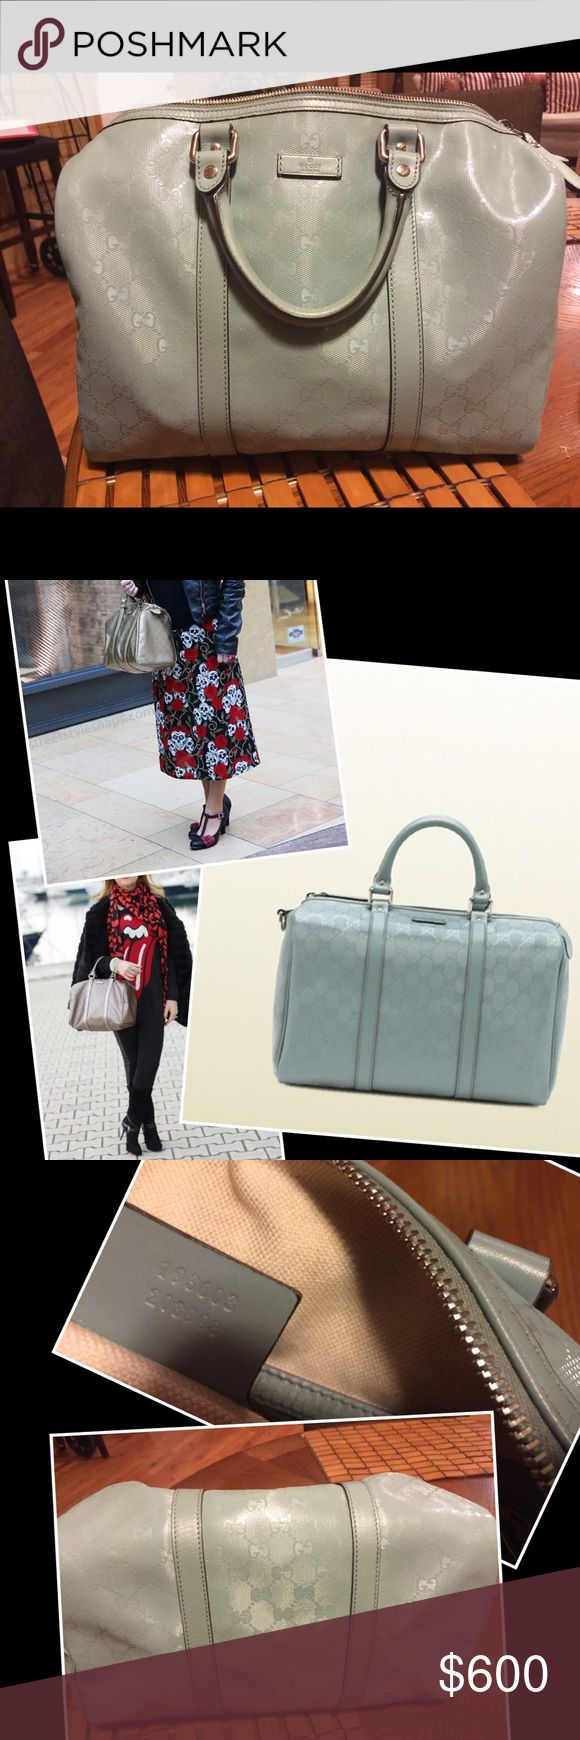 """Gucci Sky GG Imprime Coated Canvas Joy Boston bag Authentic Gucci Sky Blue GG Imprime Coated Canvas Medium Joy Boston Bag; Gucci vinyl Hard to find item!! In great condition, almost new. Does not come with certificate, 100% authentic.   Material: Metallic blue GG coated canvas with smooth leather trim Origin: Italy Measurements: 13"""" L x 7"""" W x 8.75"""" H Interior Pockets: One patch pocket Handles: Double rolled patent leather handles Handle Drop: 4.5"""" Closure/Opening: Single zip closure…"""